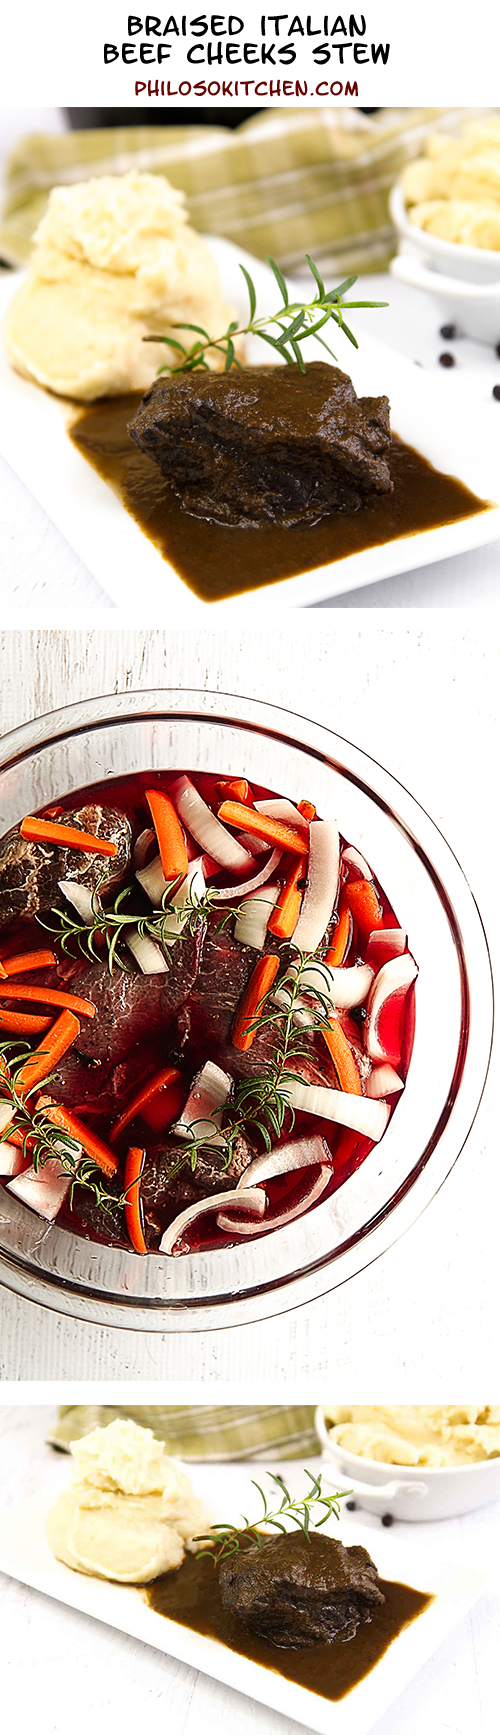 Braised Italian beef cheeks stew - try on is extremely tender and tasty!